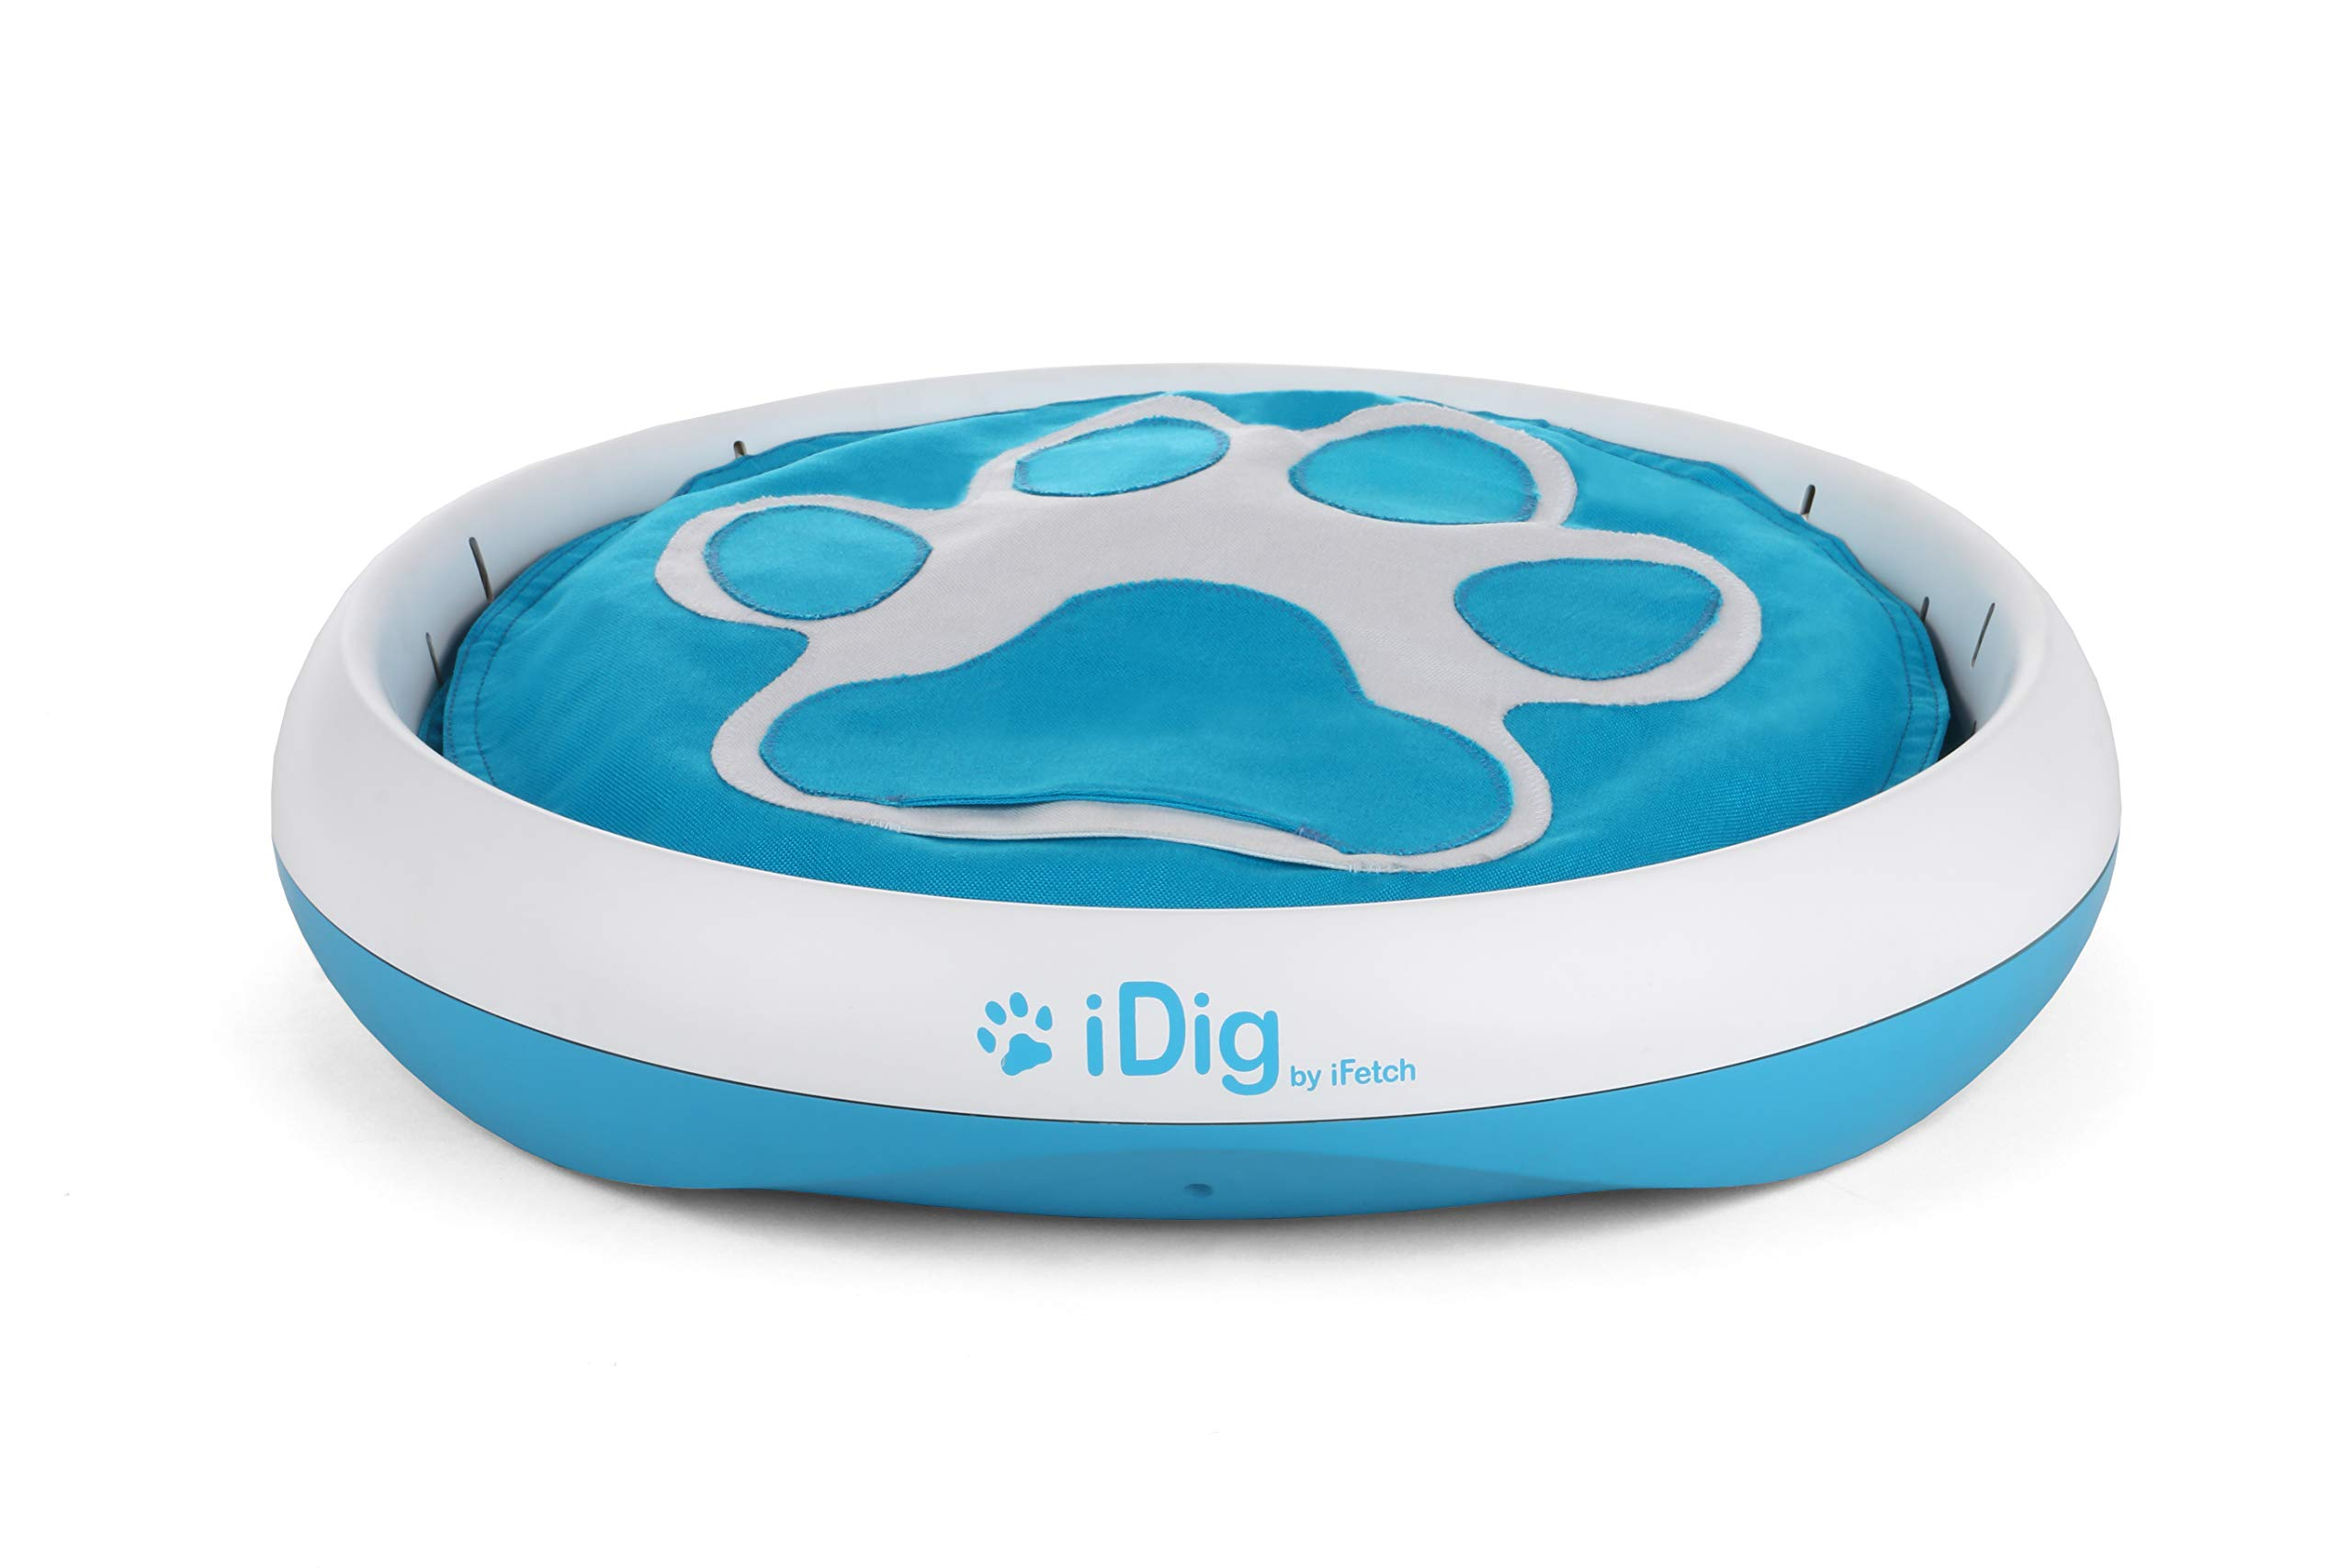 iFetch Q-100 Idig Digging Toy, One Size, Blue/White by iFetch